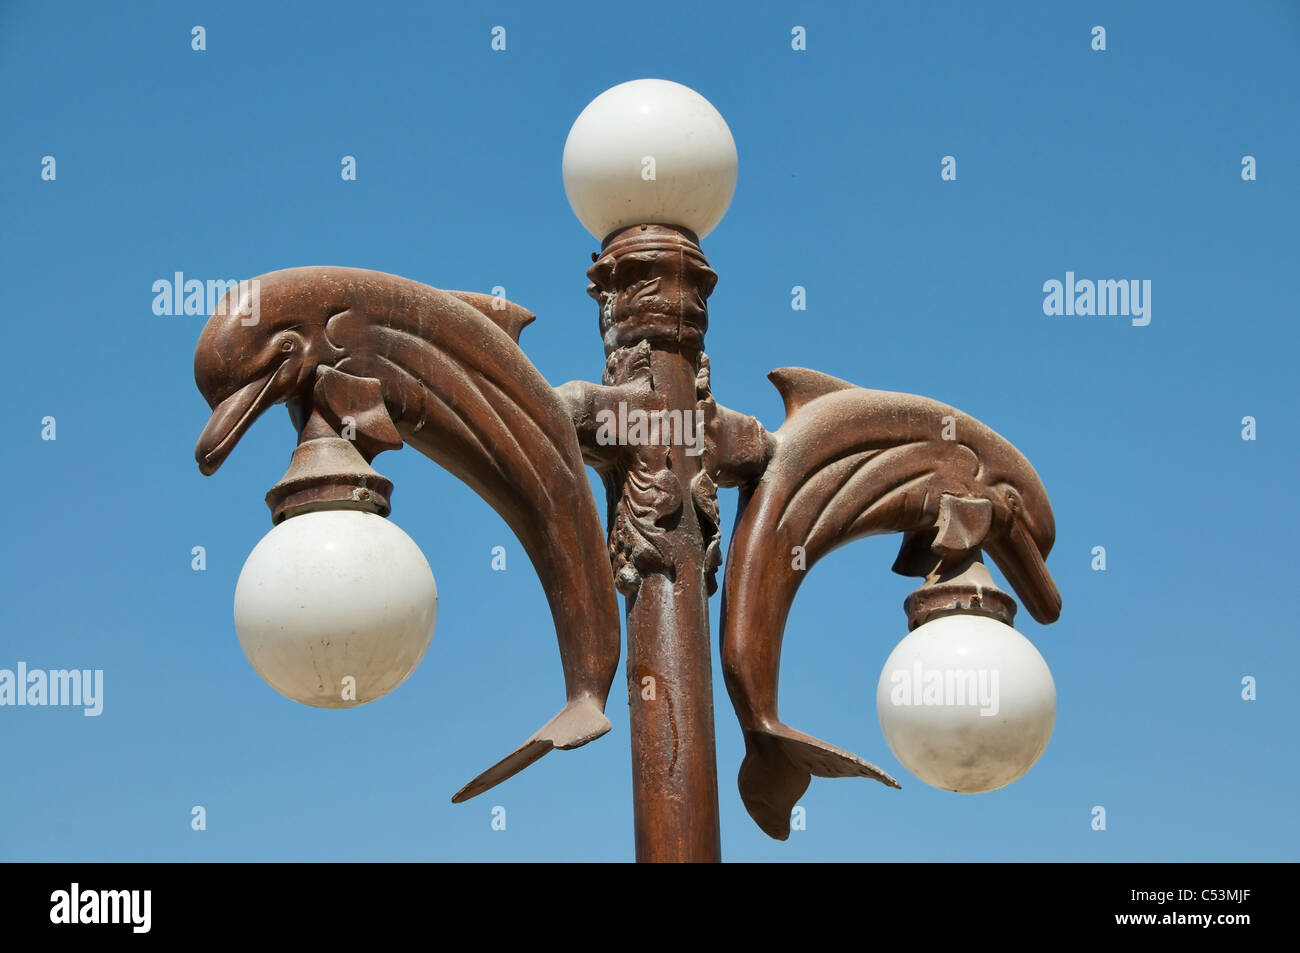 Outdoor Lighting With Decorative Dolphins And Round Globe Light ...